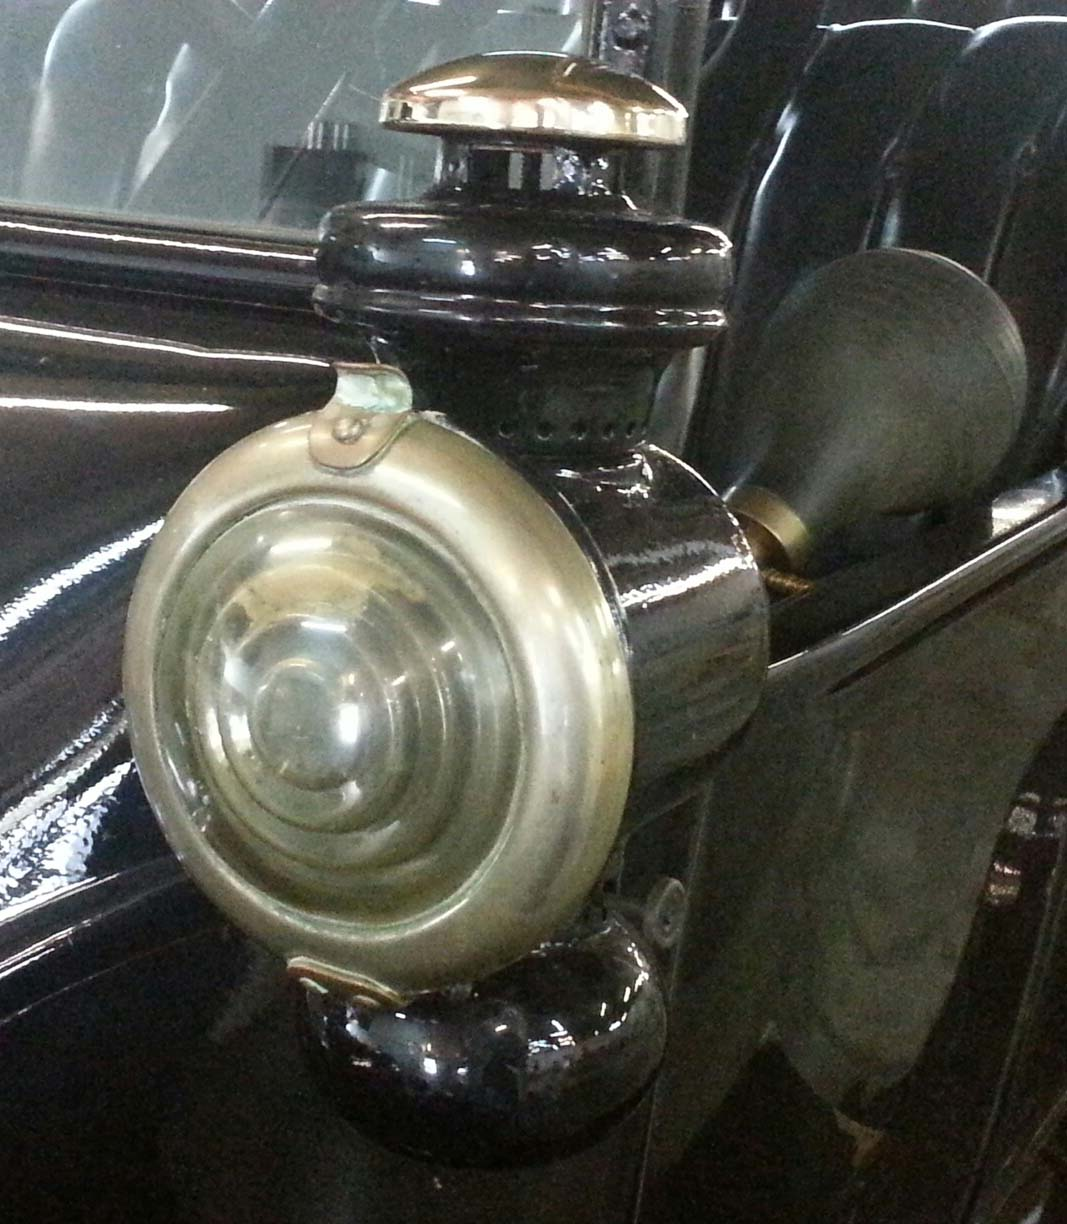 Oil Lamp other side